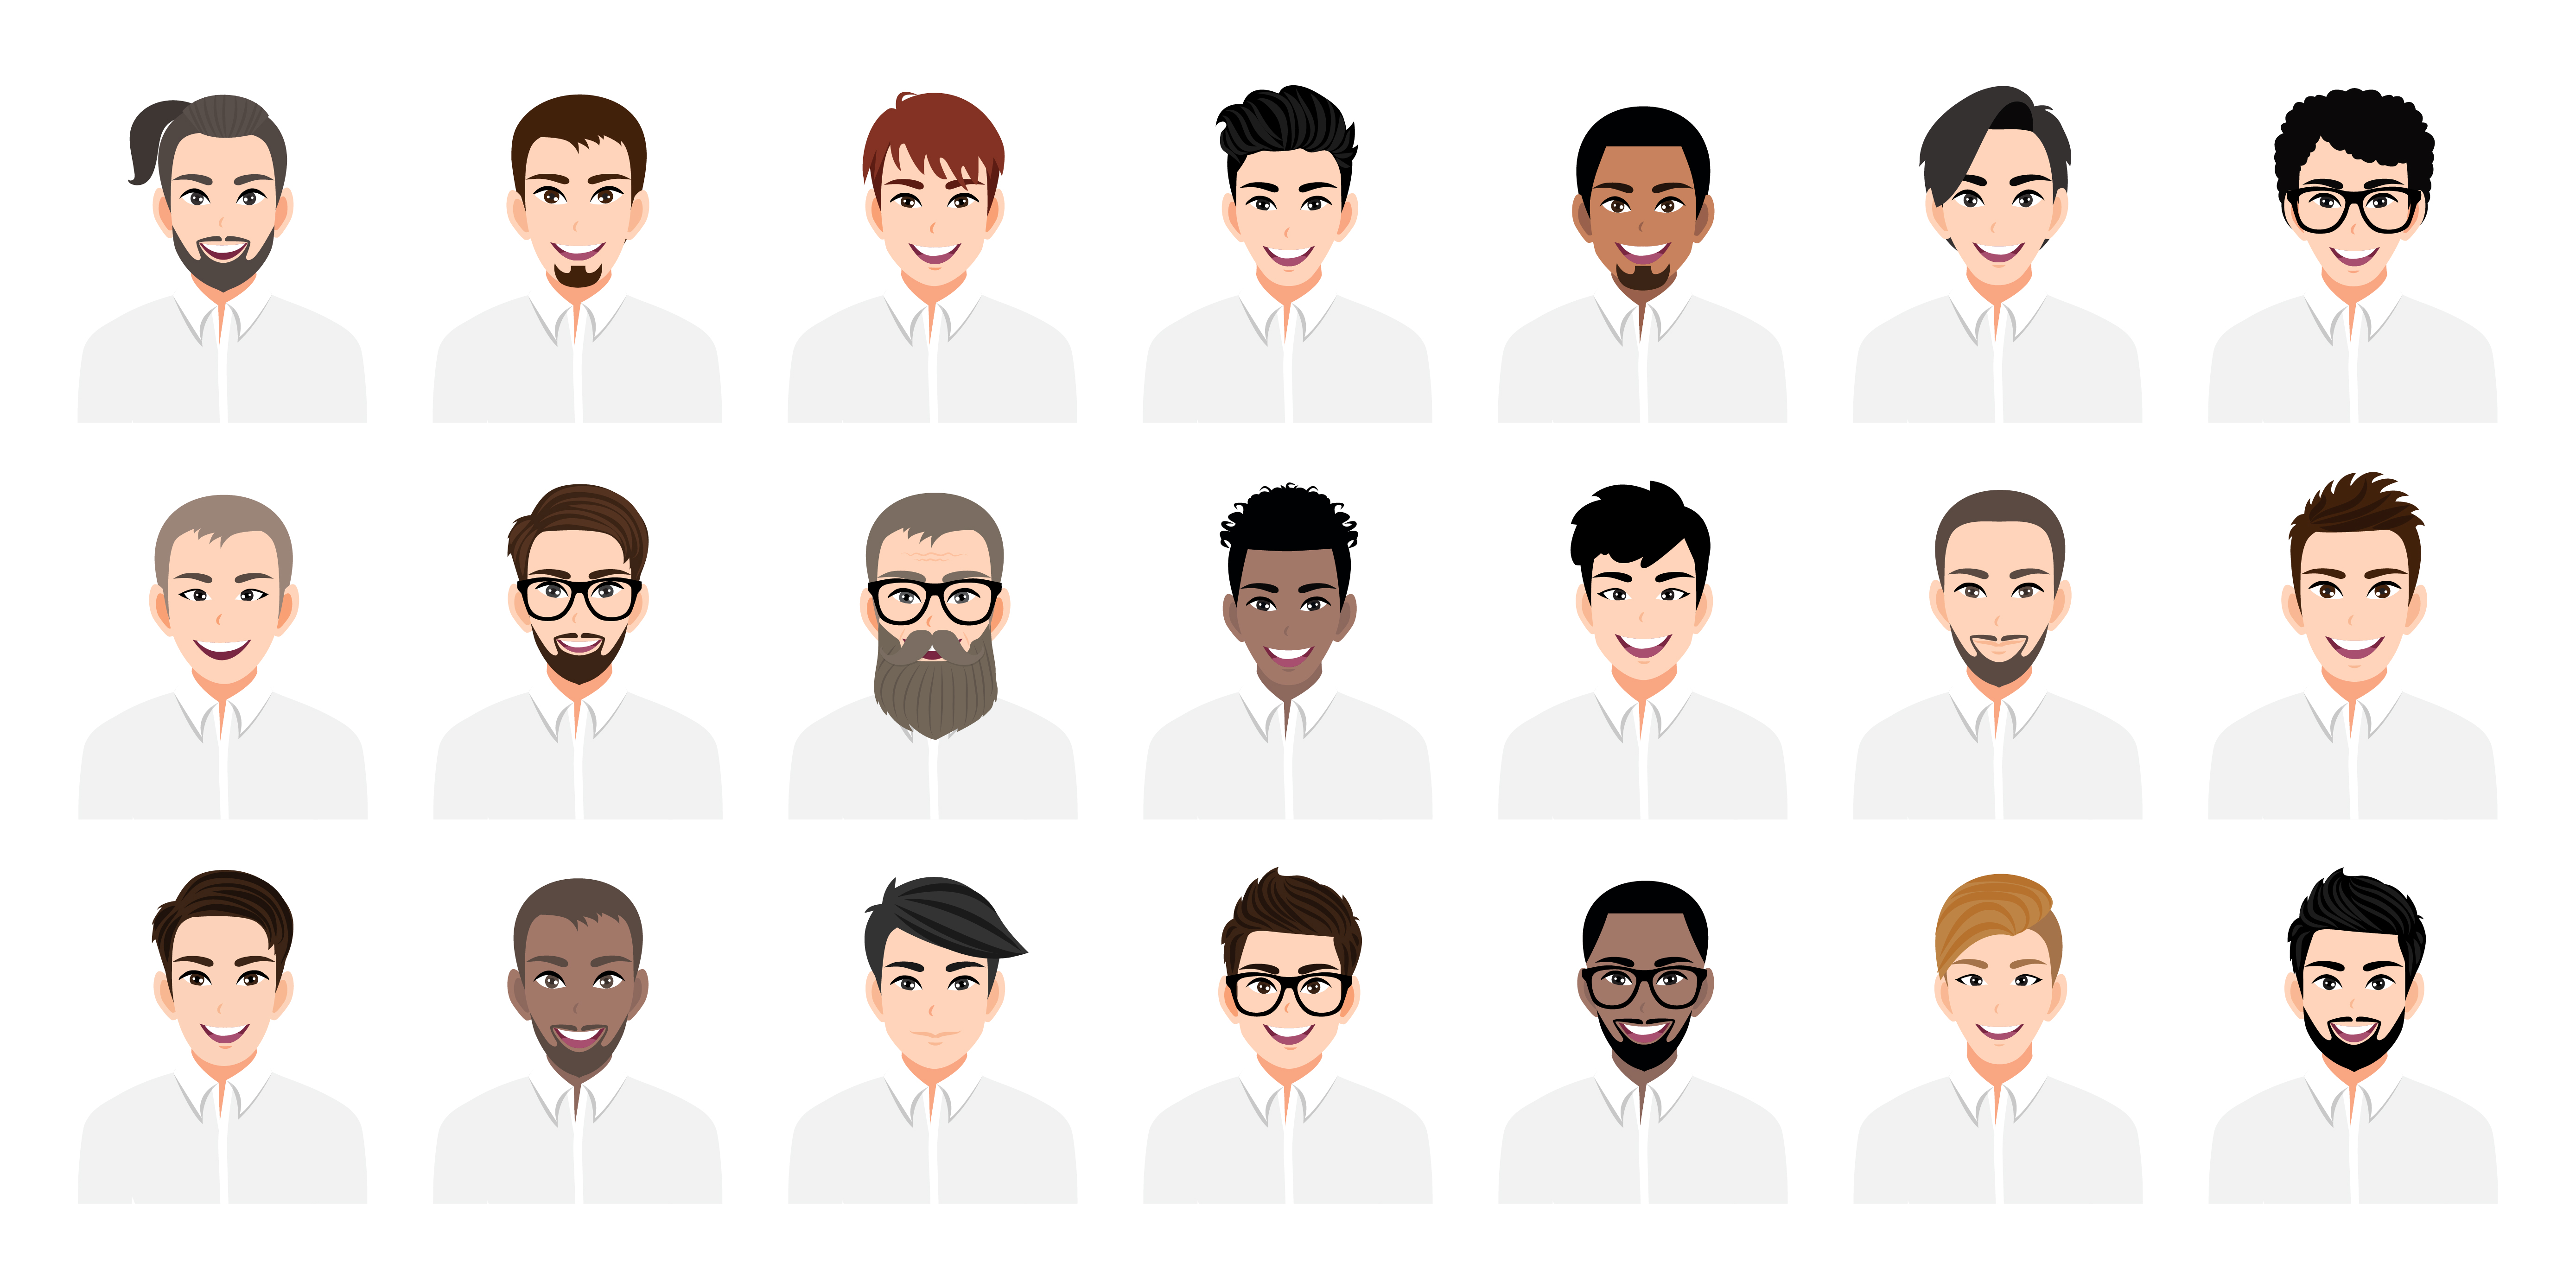 Young Men Cartoon Set With Different Hairstyles Download Free Vectors Clipart Graphics Vector Art